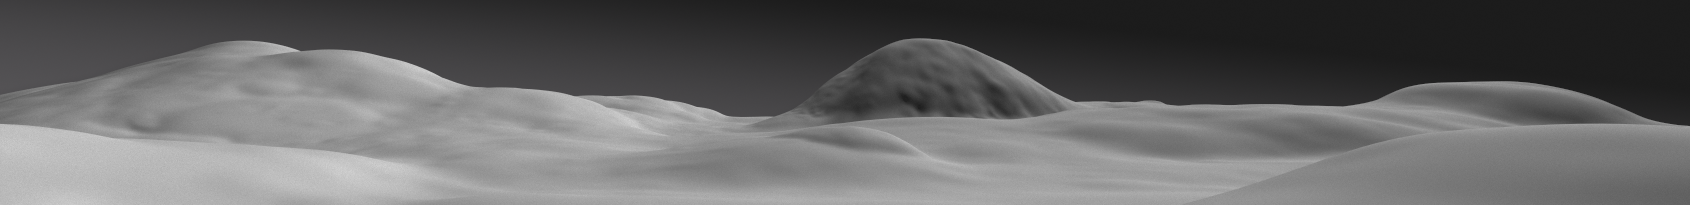 It worked perfectly. Subdividing removed the pixelized artifacts and all we're left with for the entire 16896x2048 render is a buttery smooth landscape with lucious soft noise all over. So far so good.